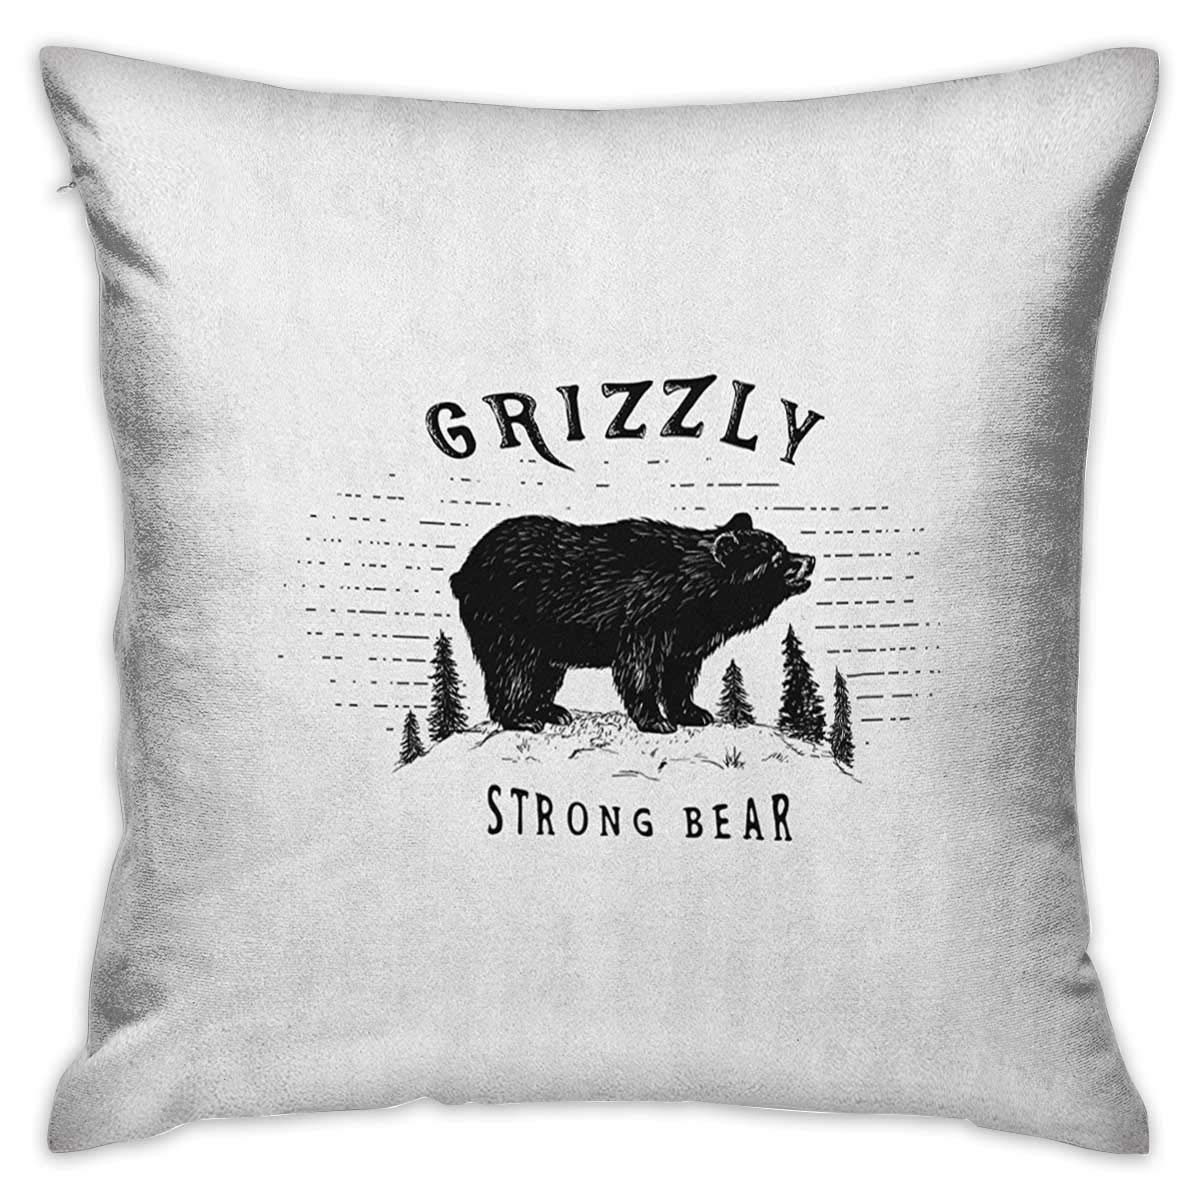 Bear Square Funny Pillowcase Strong Grizzly Bear in The Forest Vintage Grunge Look Life in The Mountains Theme Black White Cushion Cases Pillowcases for Sofa Bedroom Car W17.7 x L17.7